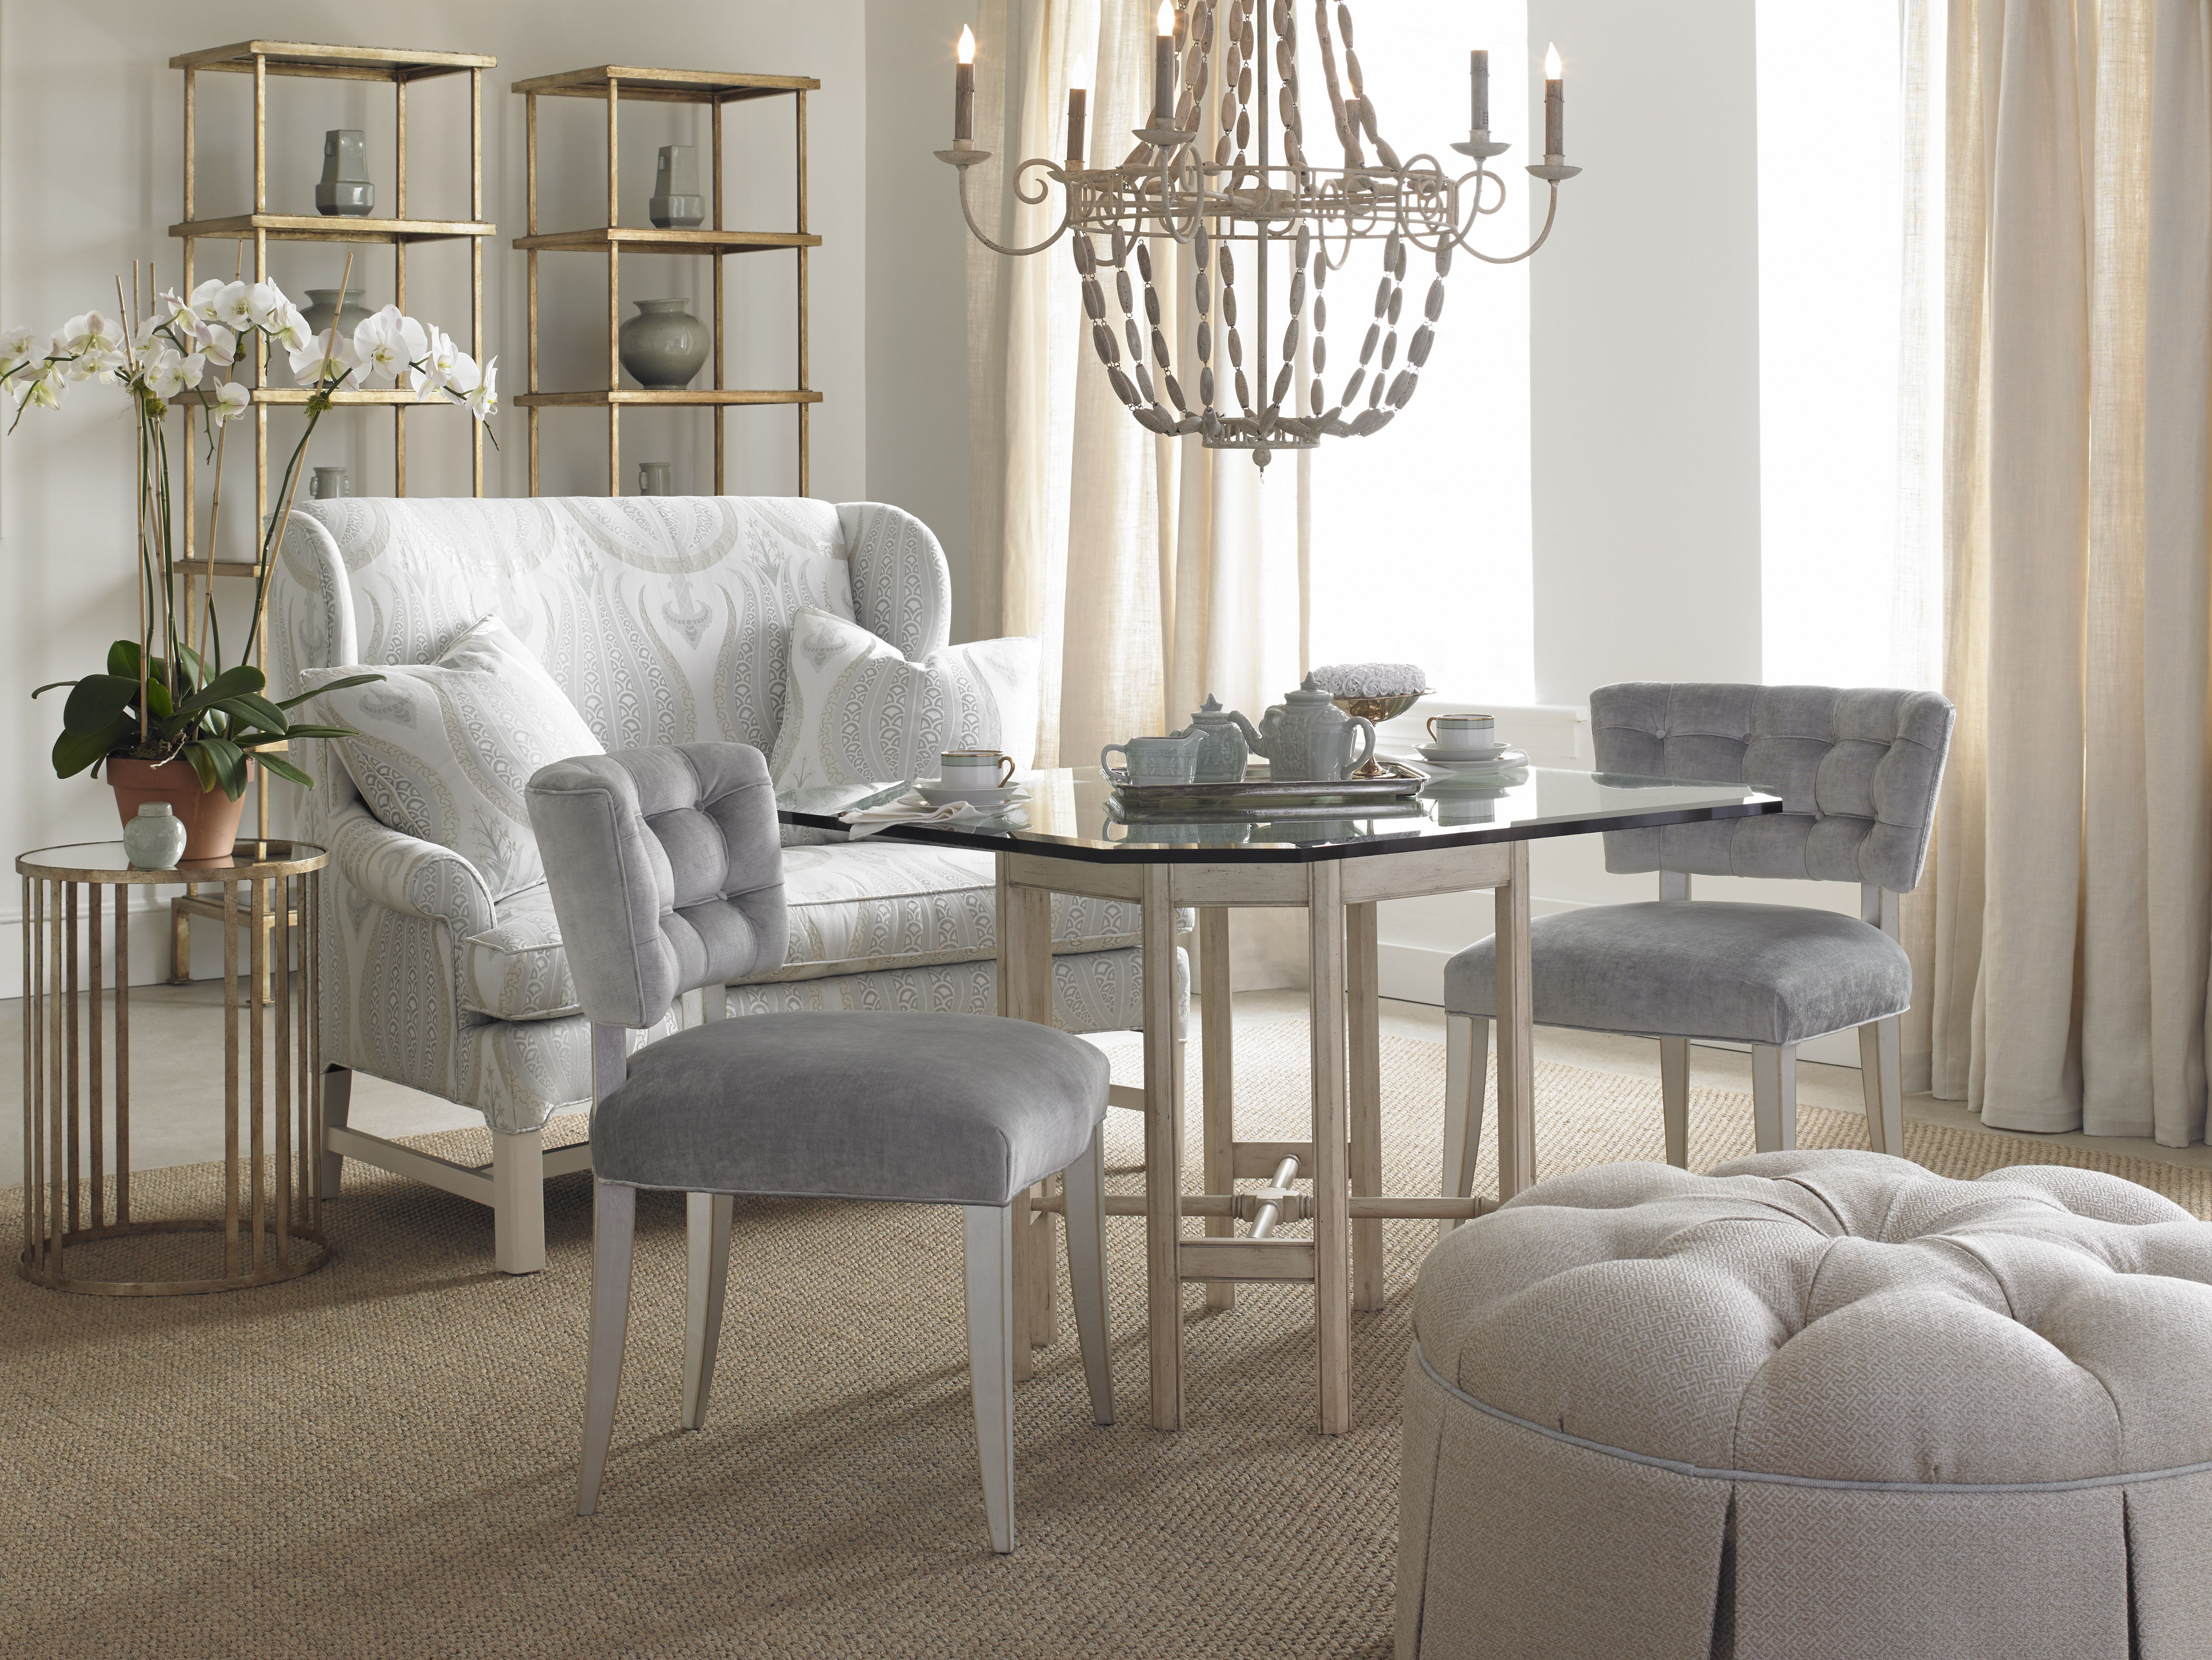 Perfect The New 1663 Sylvia Dining Chair Shown With The Octagonal Dining Table And  Loveseat.